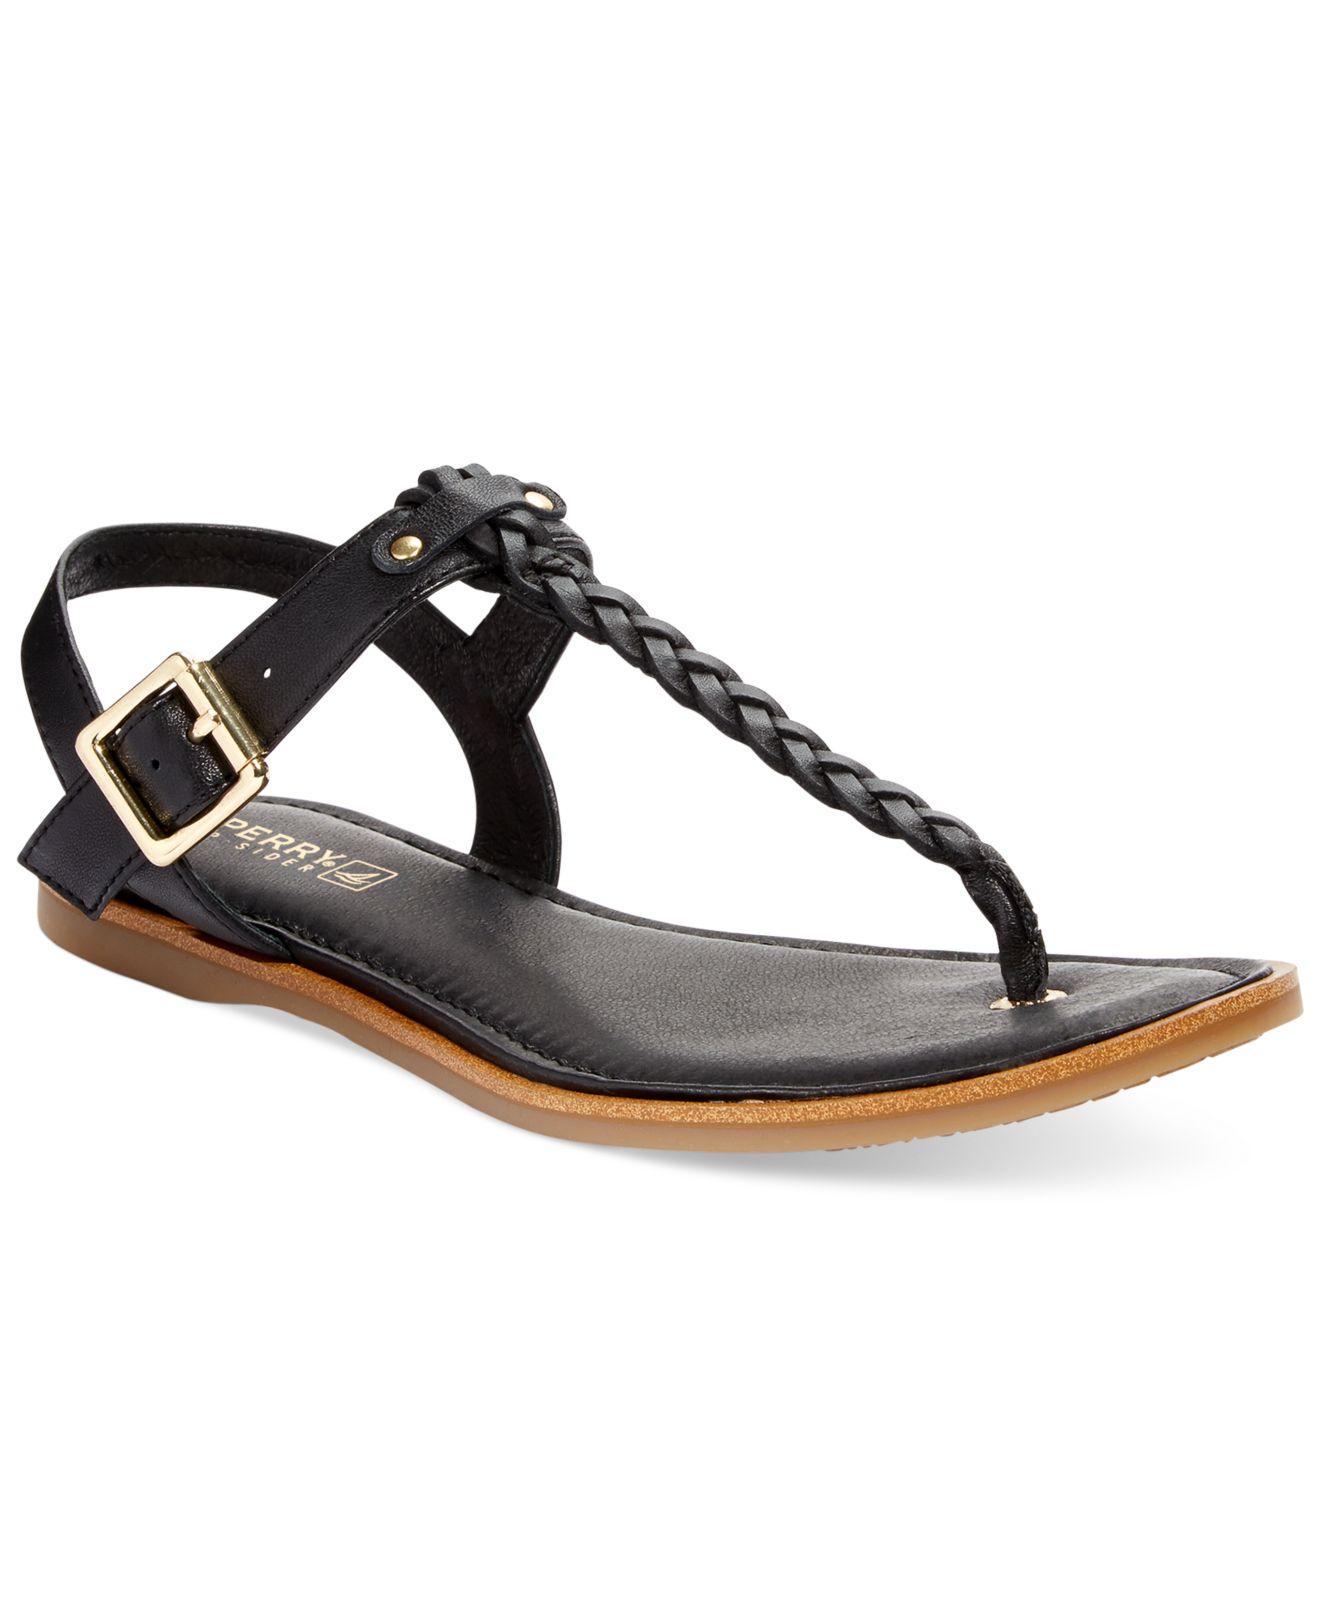 Unique FLAT SHOES BLACK WOMENS STRAPPY GLADIATOR CASUAL SANDALS  Flats